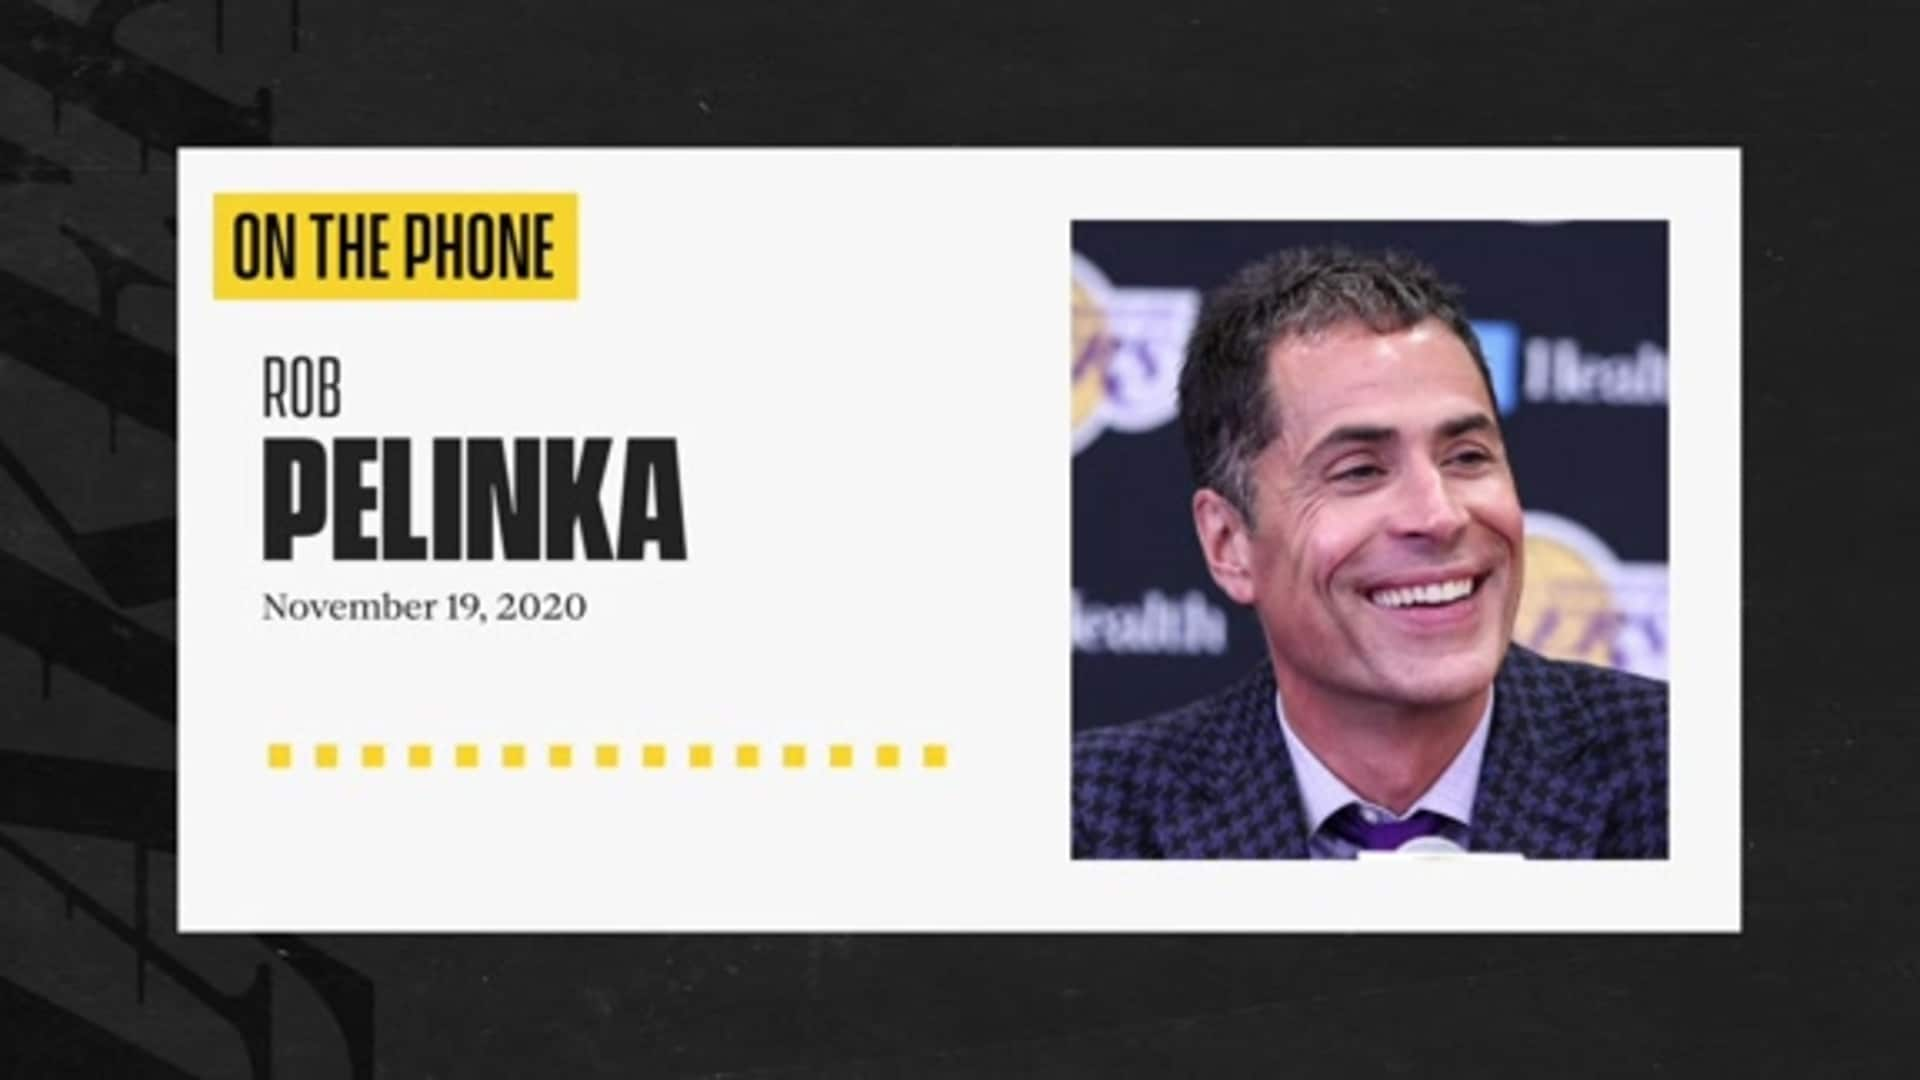 Press Conference: Rob Pelinka (11/19/20)